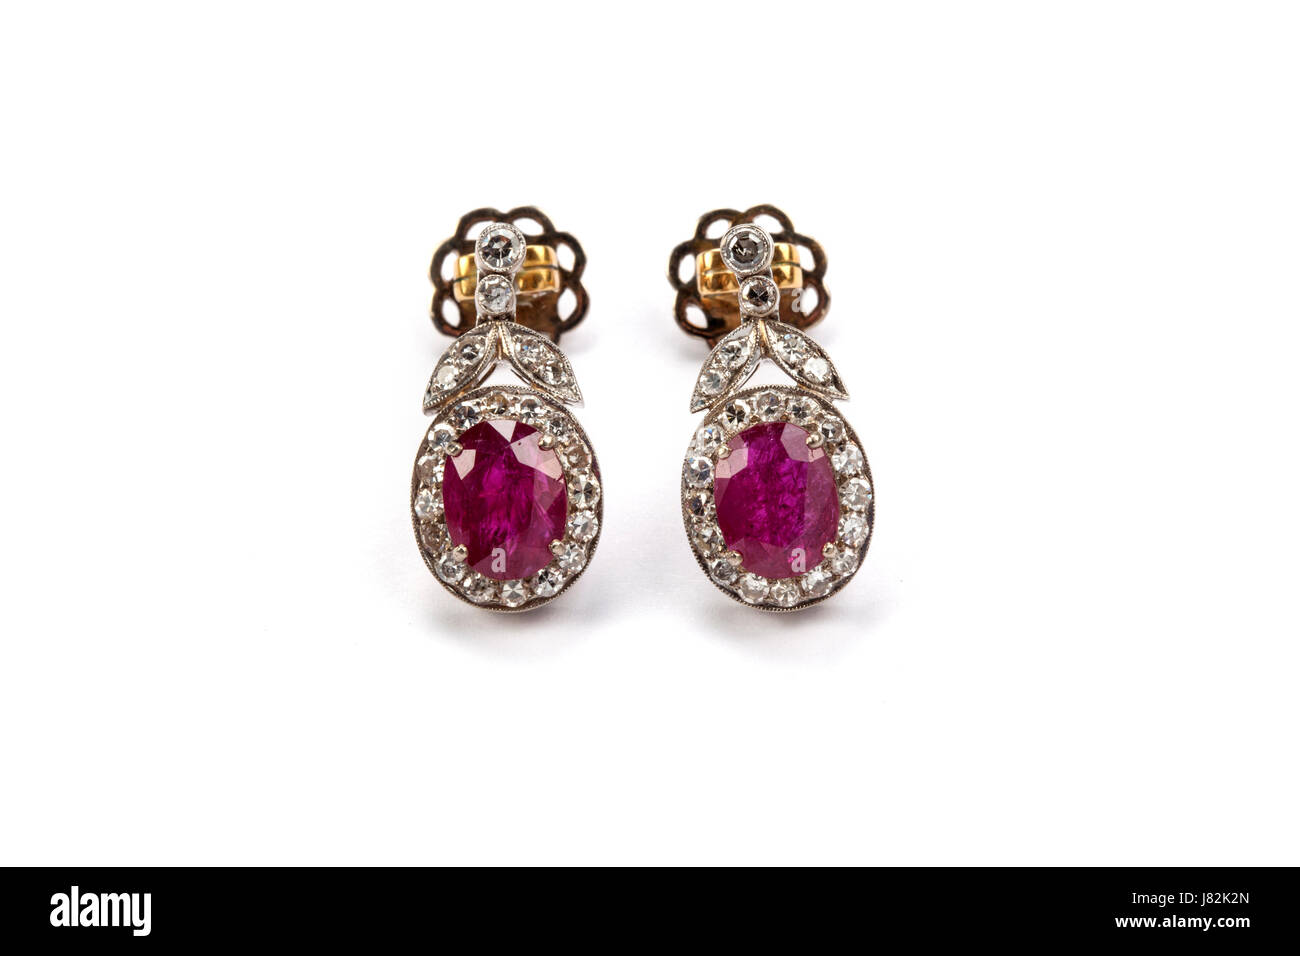 A pair of ruby and diamond earrings valued at £5000 - Stock Image